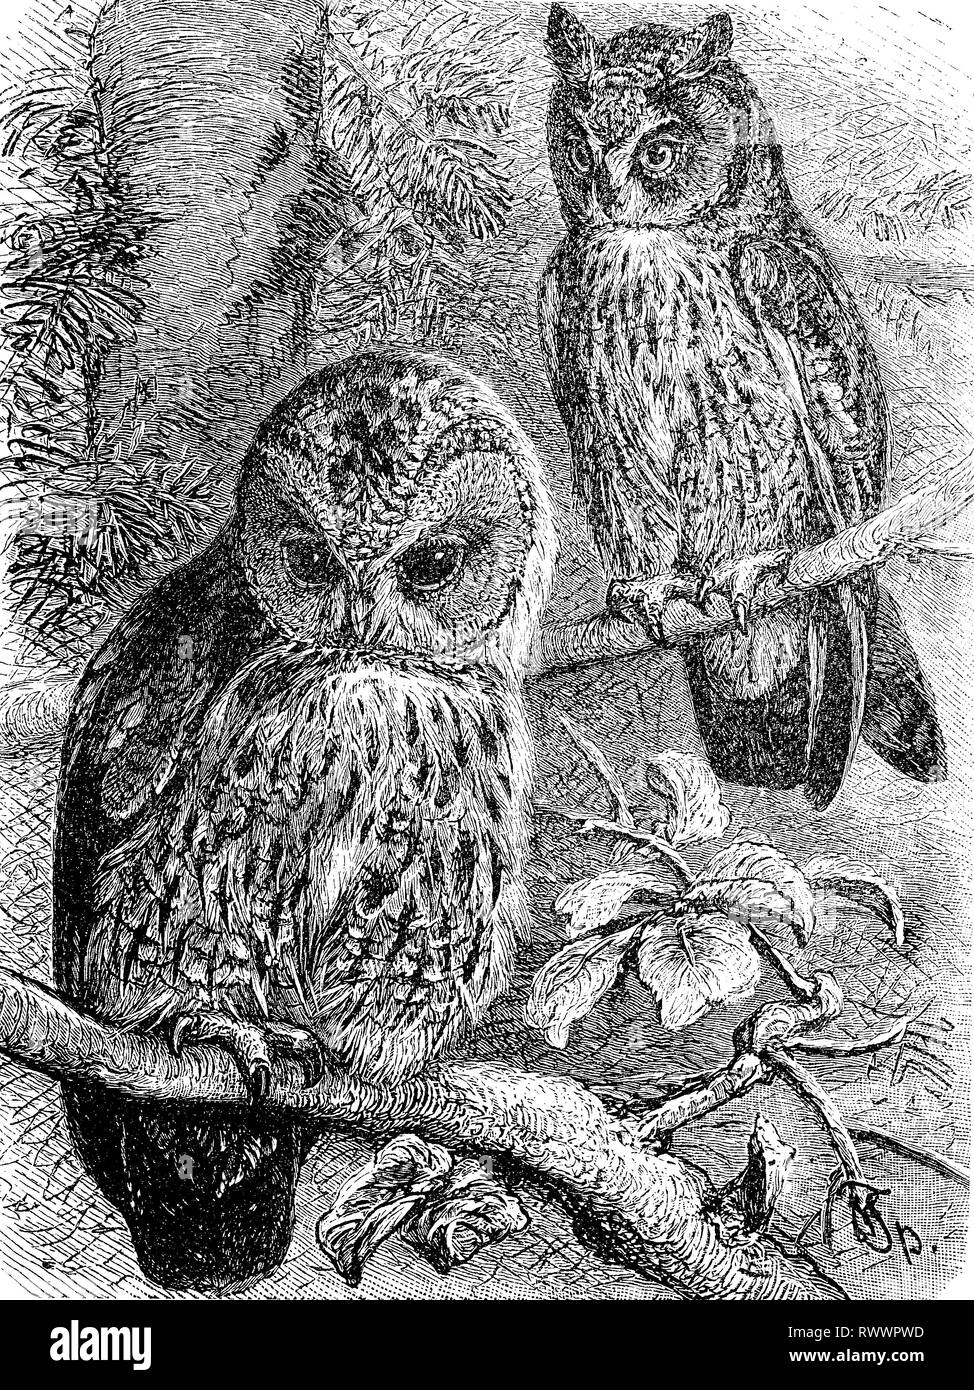 Digital improved reproduction, tawny owl or brown owl, Strix aluco and long-eared owl, Asio otus, original woodprint from th 19th century Stock Photo